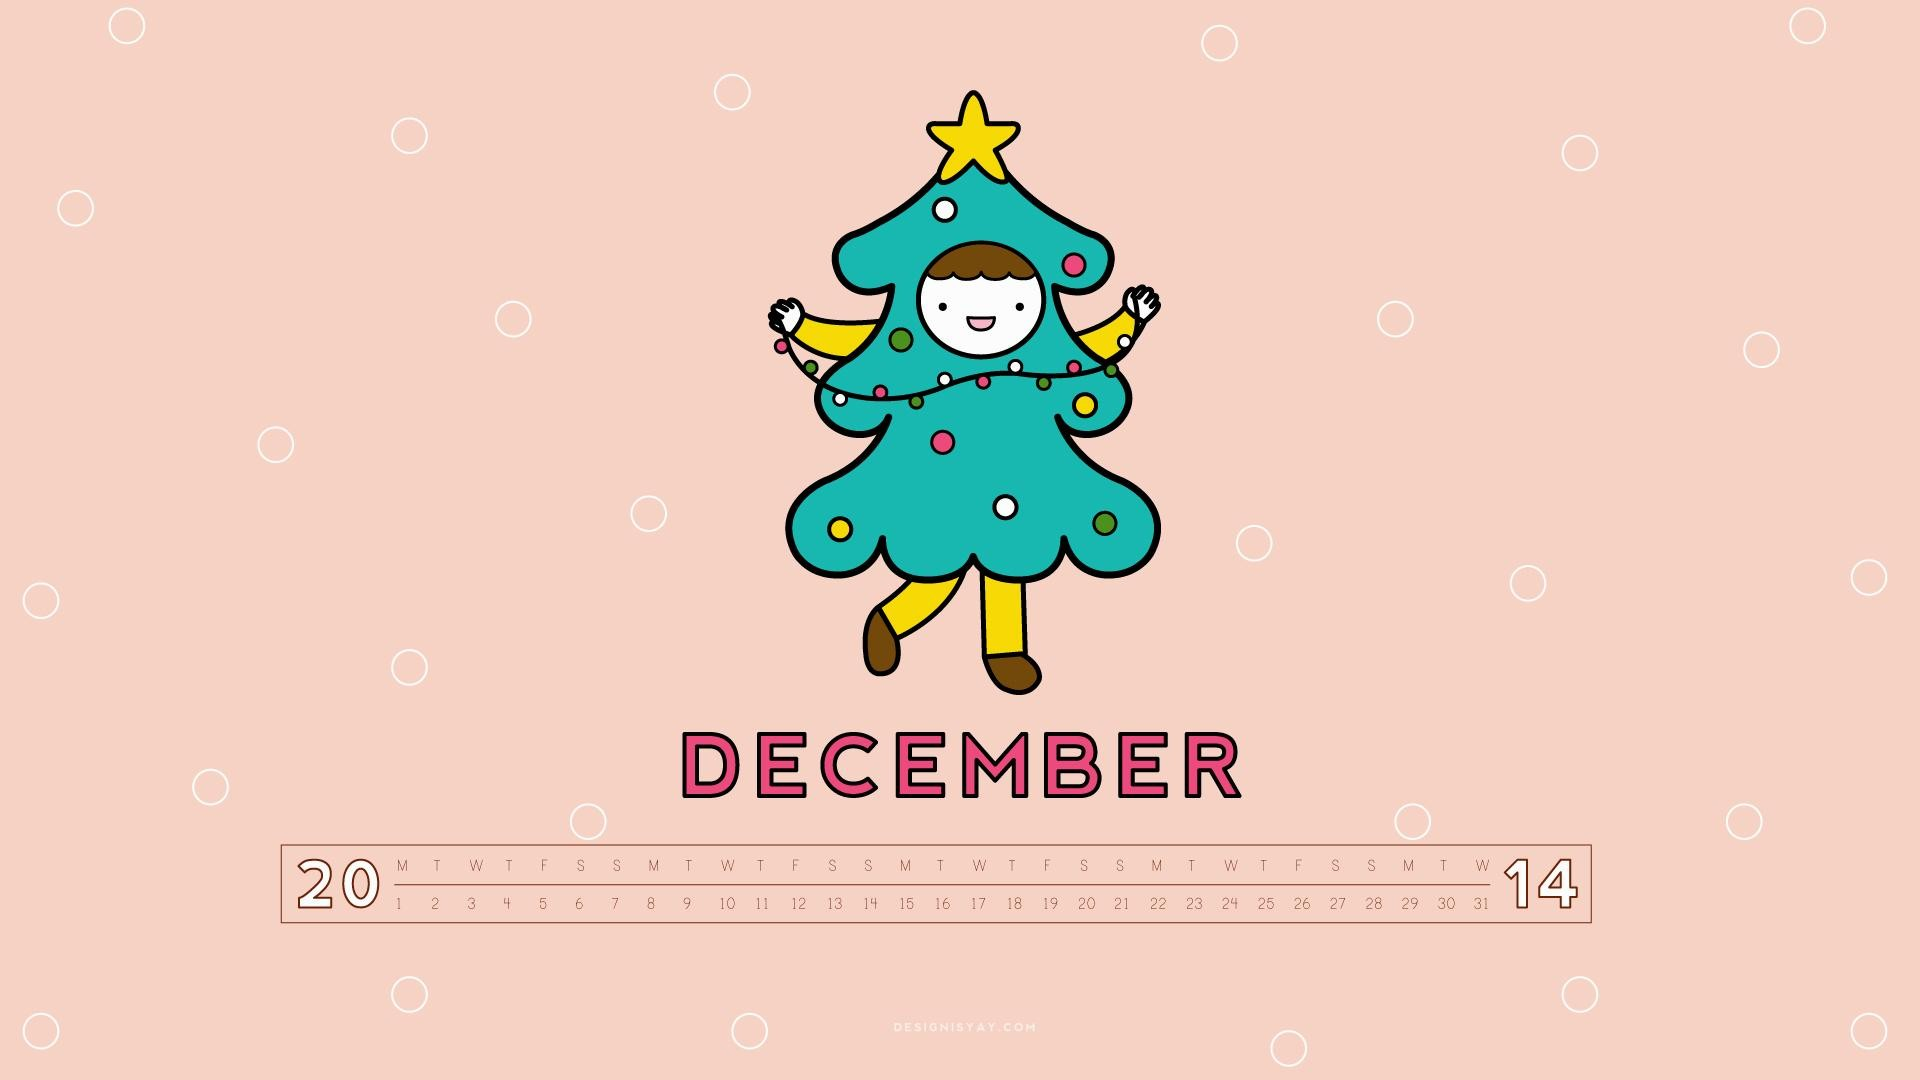 december wallpaper 183�� download free hd backgrounds for